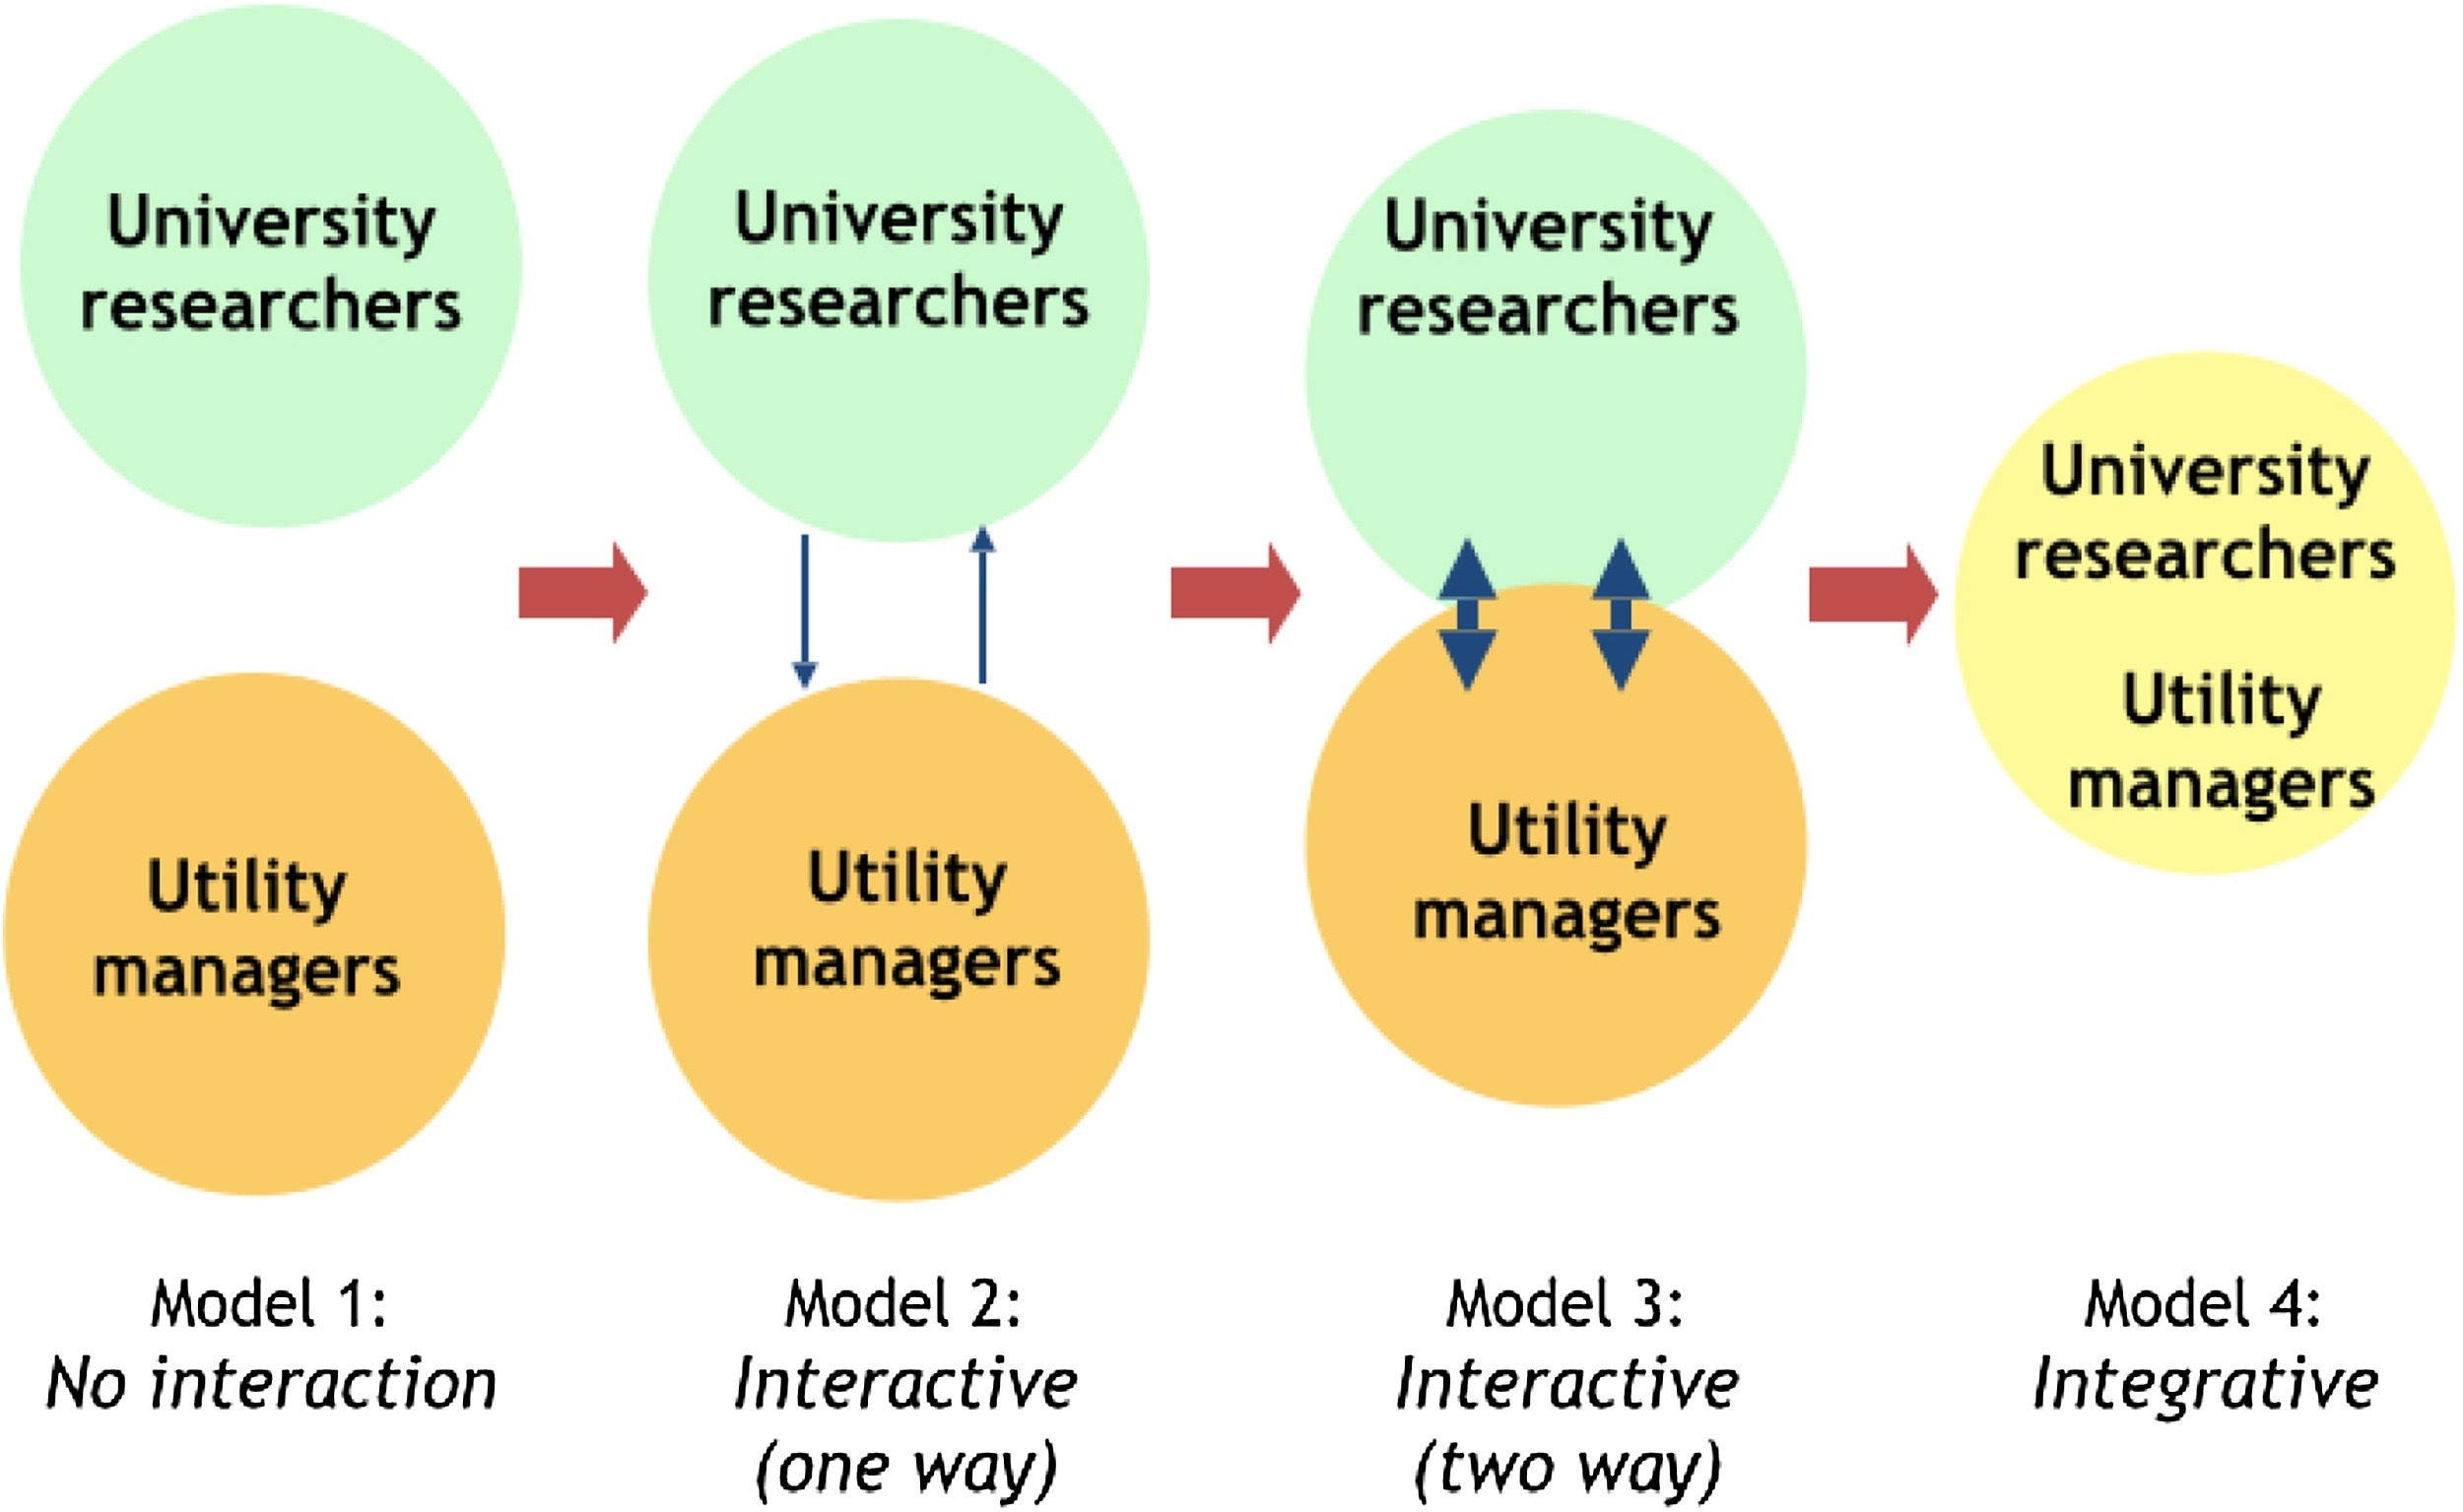 Models of university-utility collaboration.